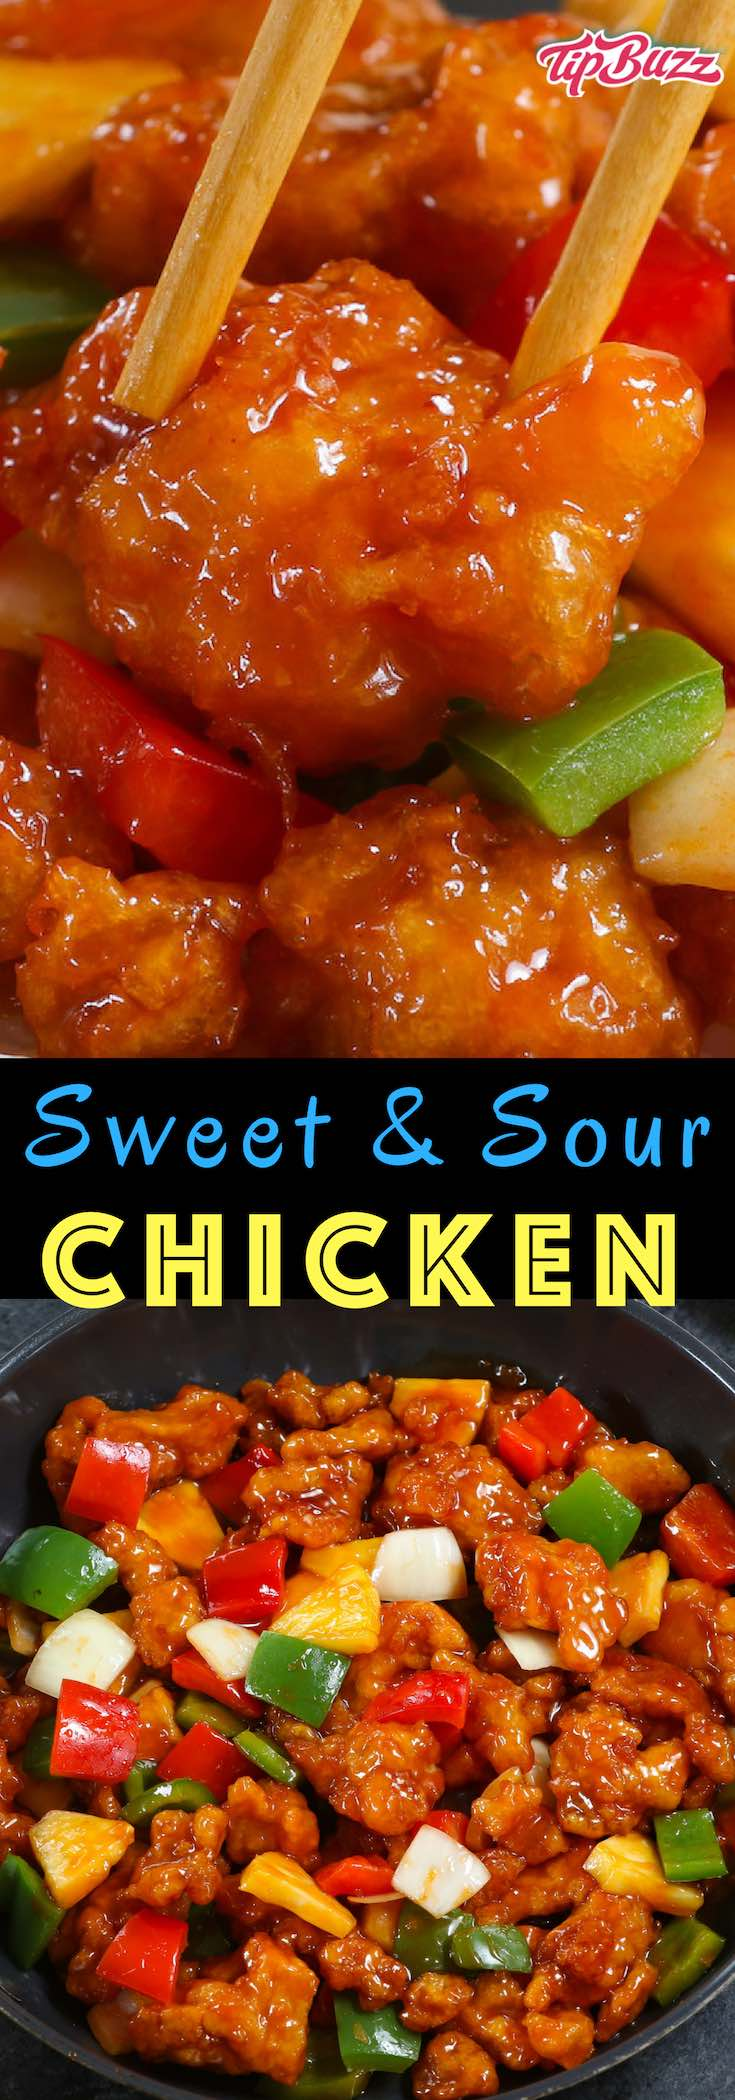 Sweet and Sour Chicken has the most delicious crispy chicken with chunks of onion, bell pepper and pineapple in a homemade sweet and sour sauce. Serve on top of rice for a quick weeknight dinner.